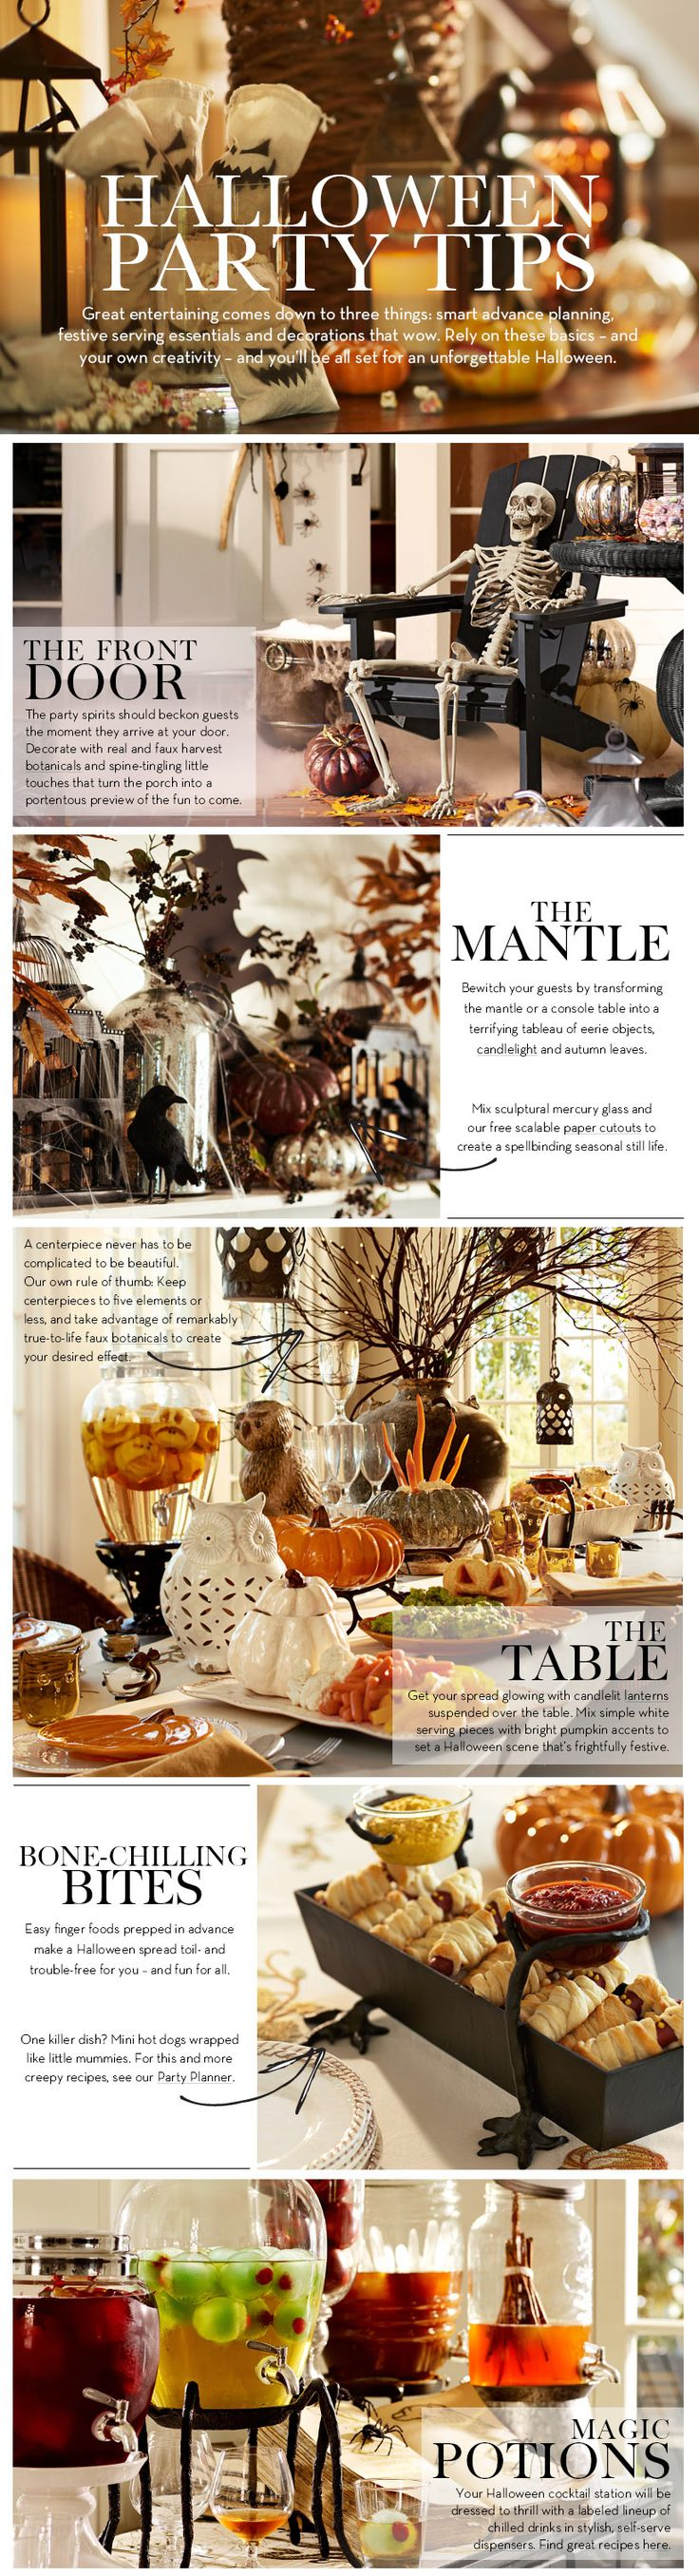 Halloween Party Tips from Pottery Barn......mostly stuff to purchase, but will give you some ideas